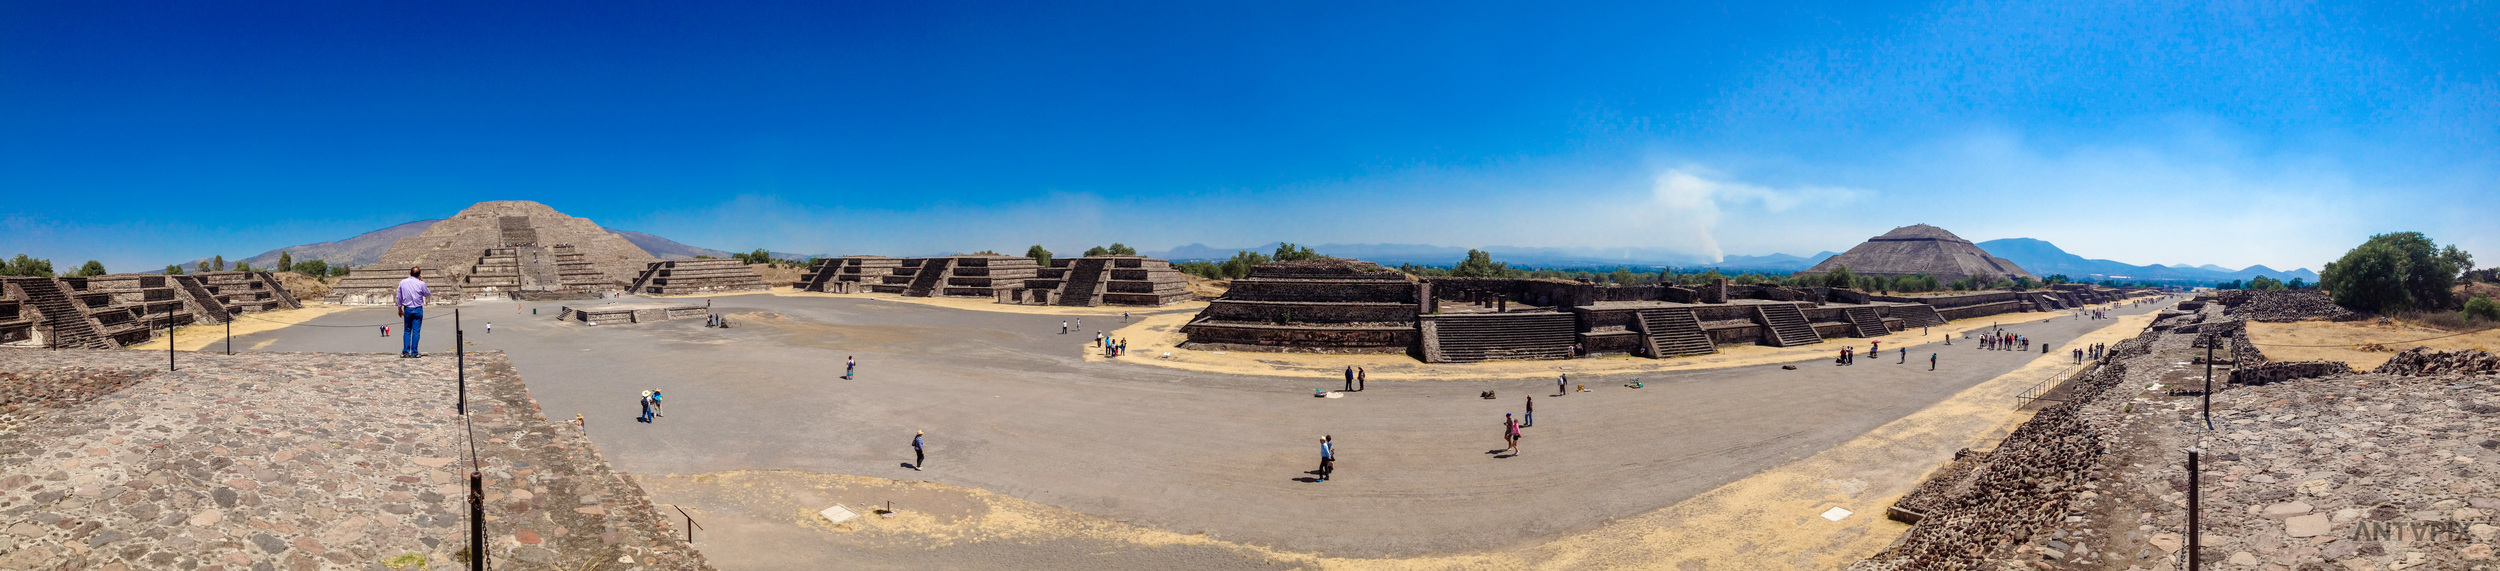 Between the Pyramid of the Moon (left) and the Pyramid of the Sun (right)